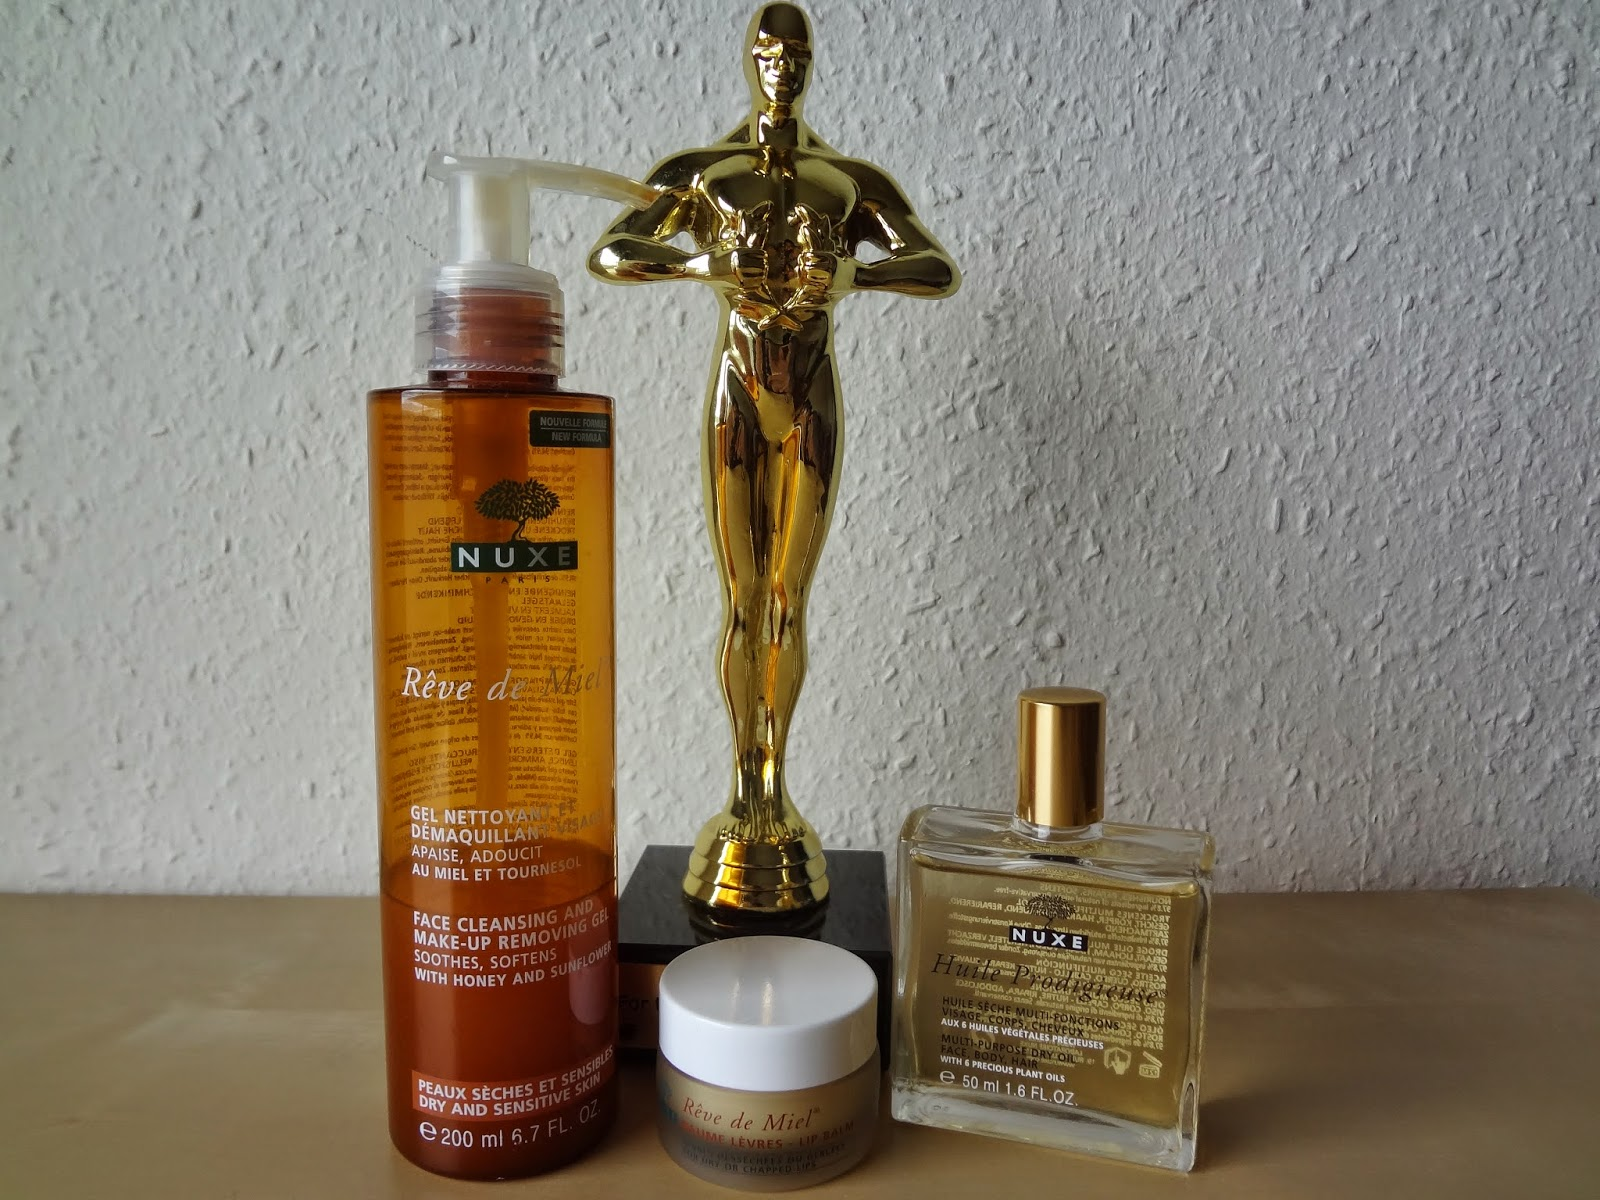 revue-review-products-favorites-favoris-nuxe-reve-miel-gel-nettoyant-demaquilant-visage-baume-levres-huile-prodigieuse-beauty-oscars-skincare-oil-lipbalm